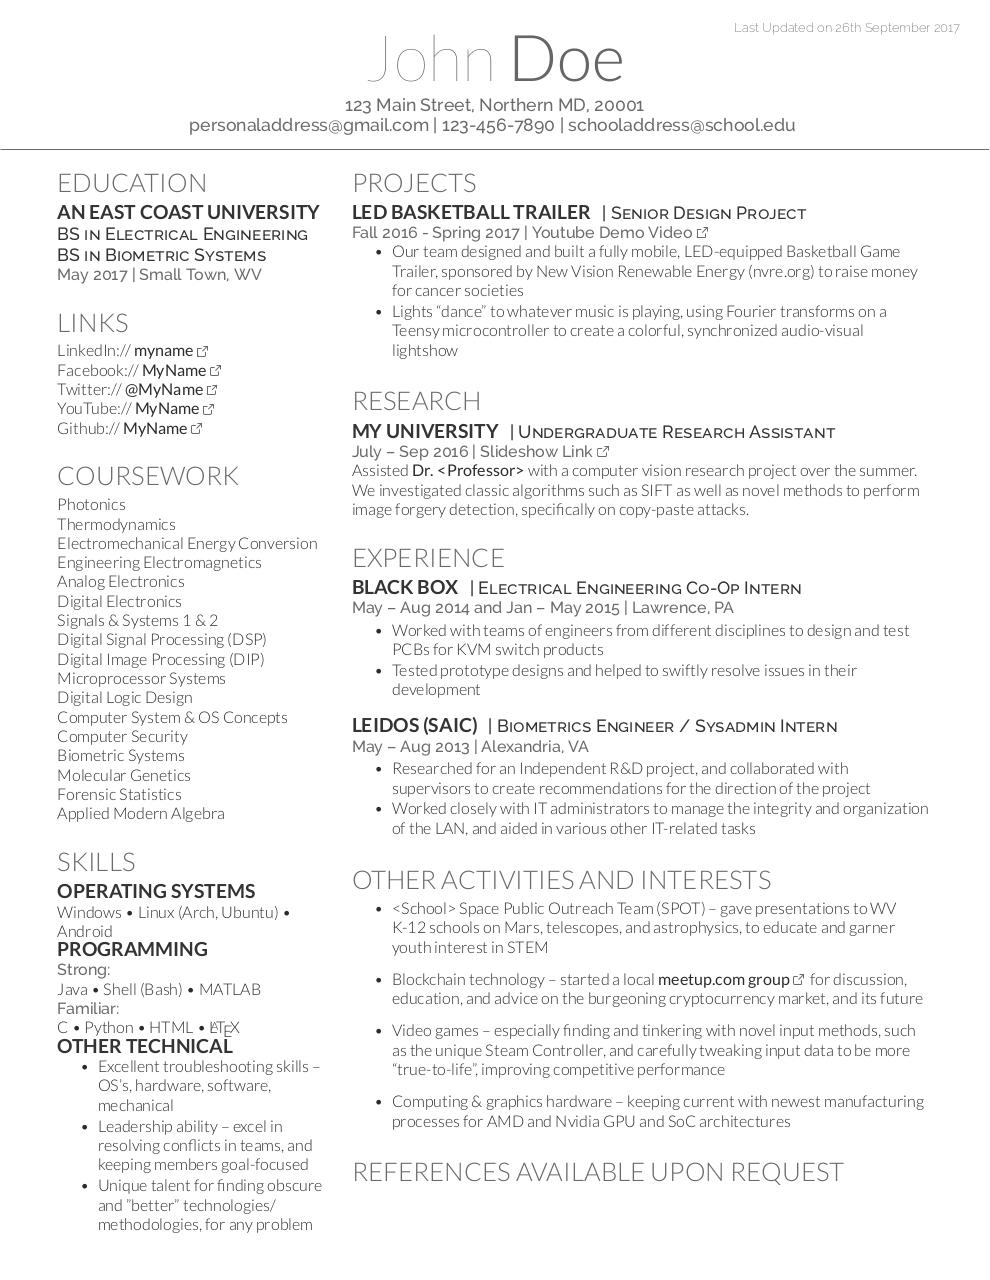 Fake resume pdf archive document preview fake resumepdf page 11 thecheapjerseys Image collections